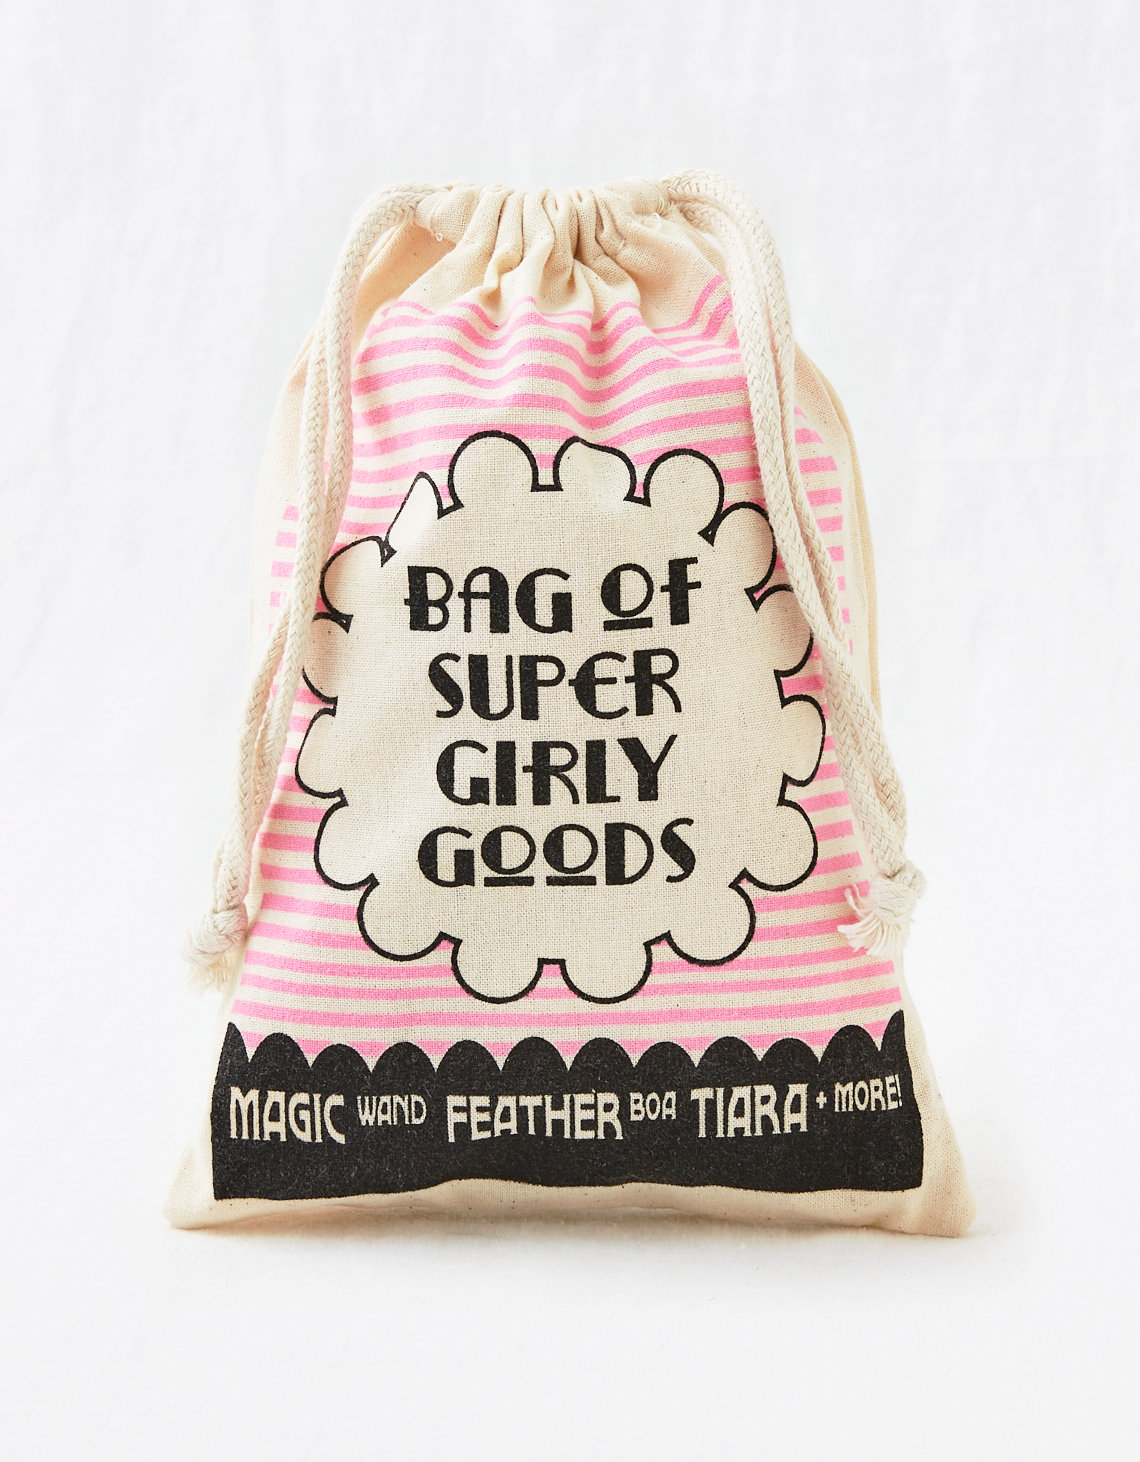 Spitfire Girl Bag of Super Girly Goods | Tuggl